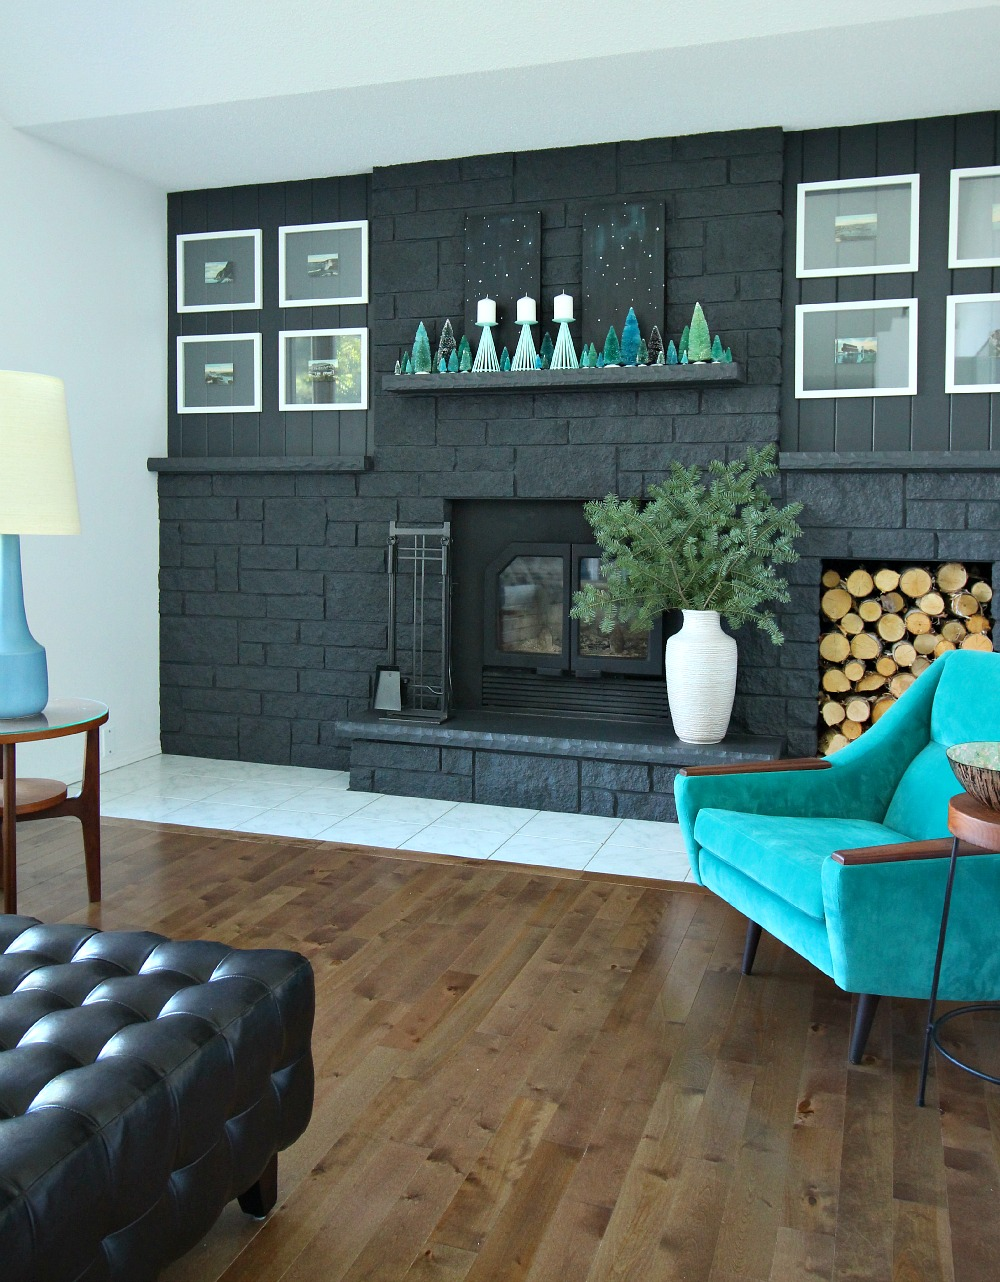 How to decorate with turquoise and teal for the holidays